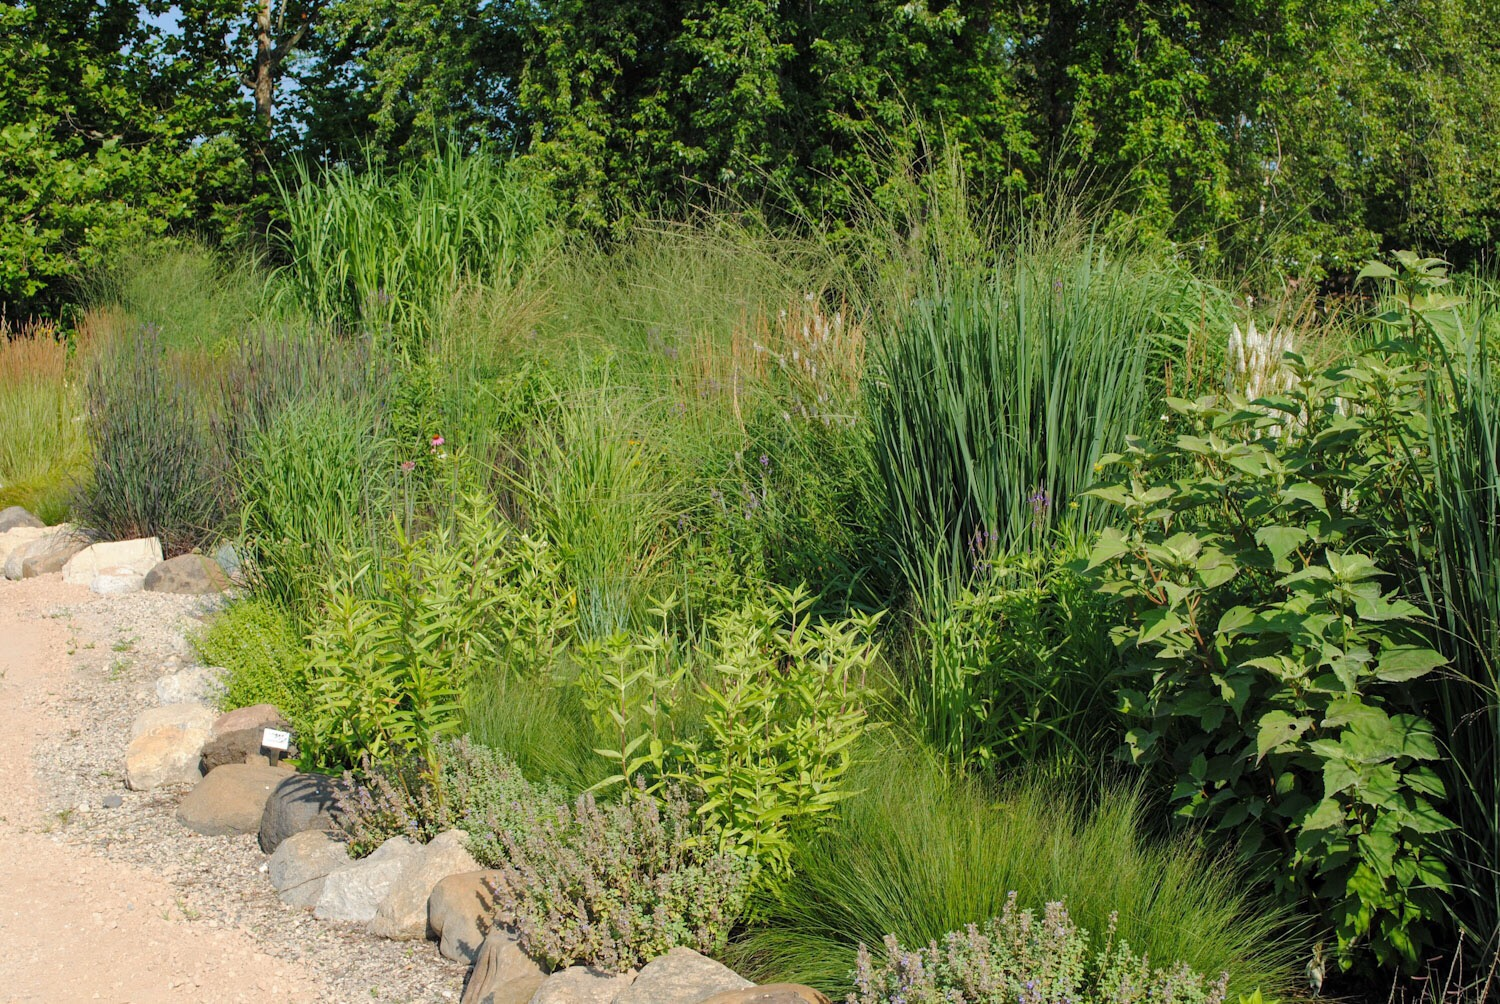 The Grass Garden, a planting where he evaluates members of the Poaceae.